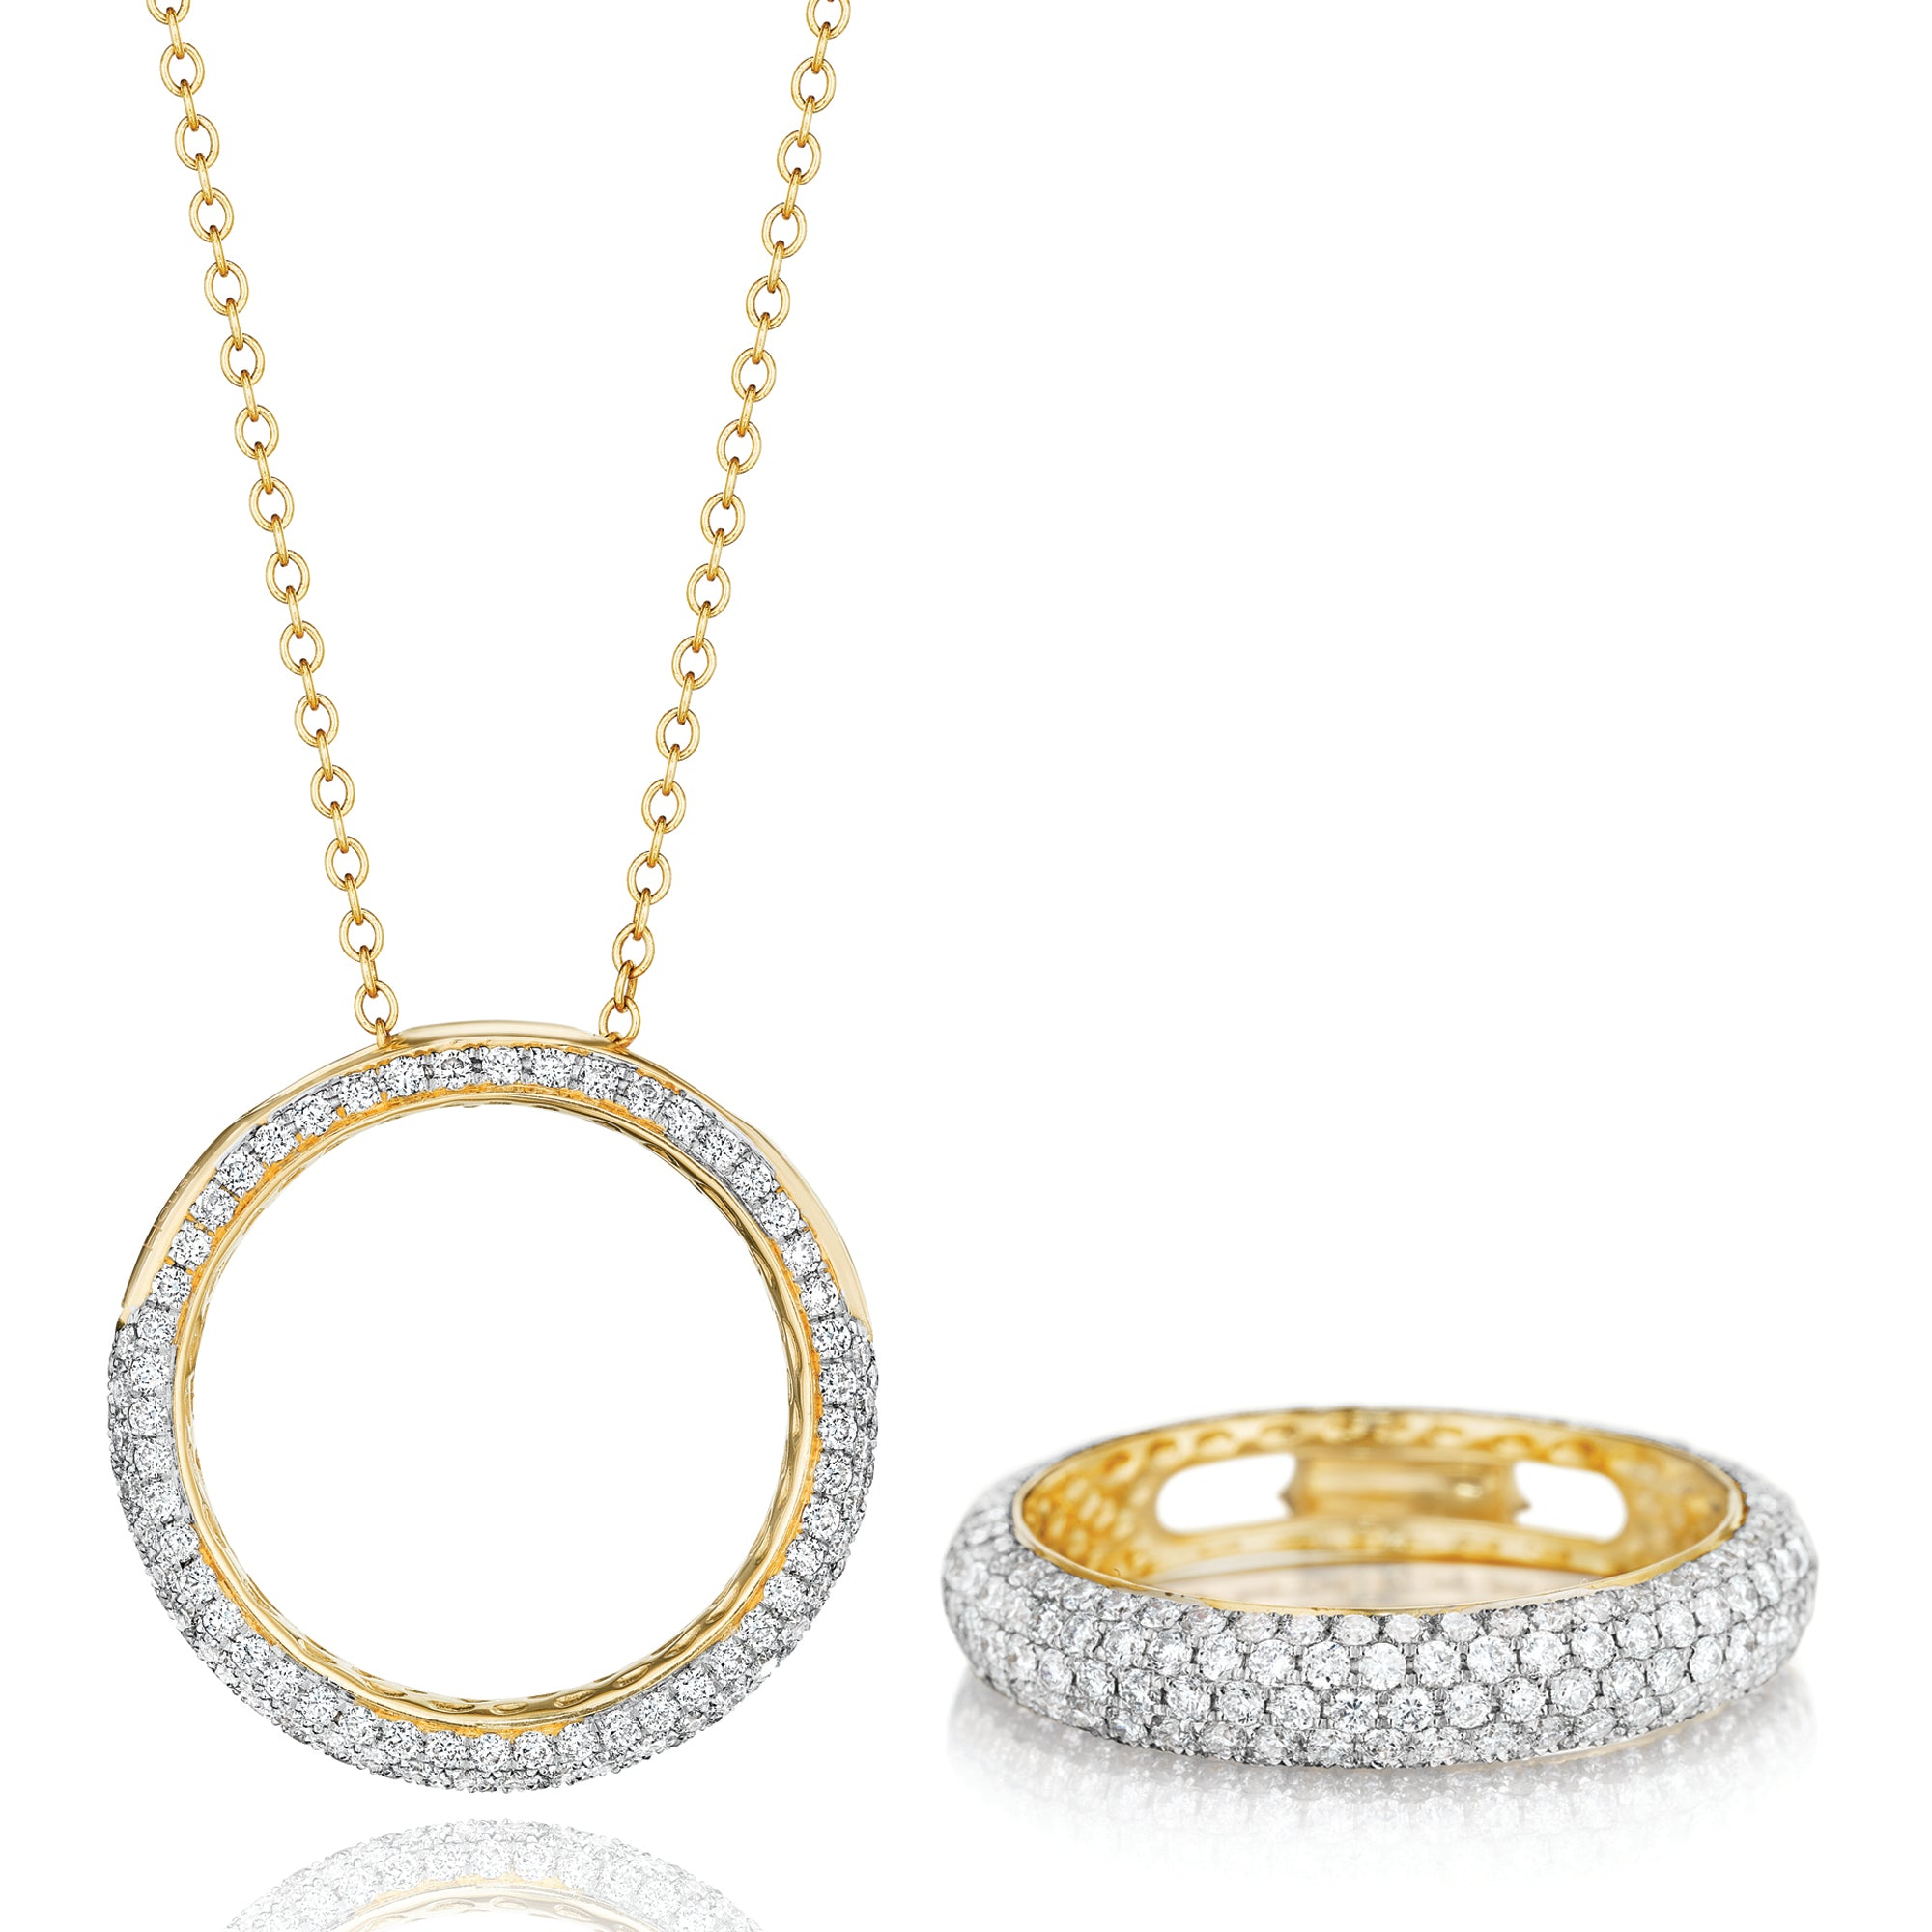 Phillips House revolution gold diamond infinity band ring necklace.